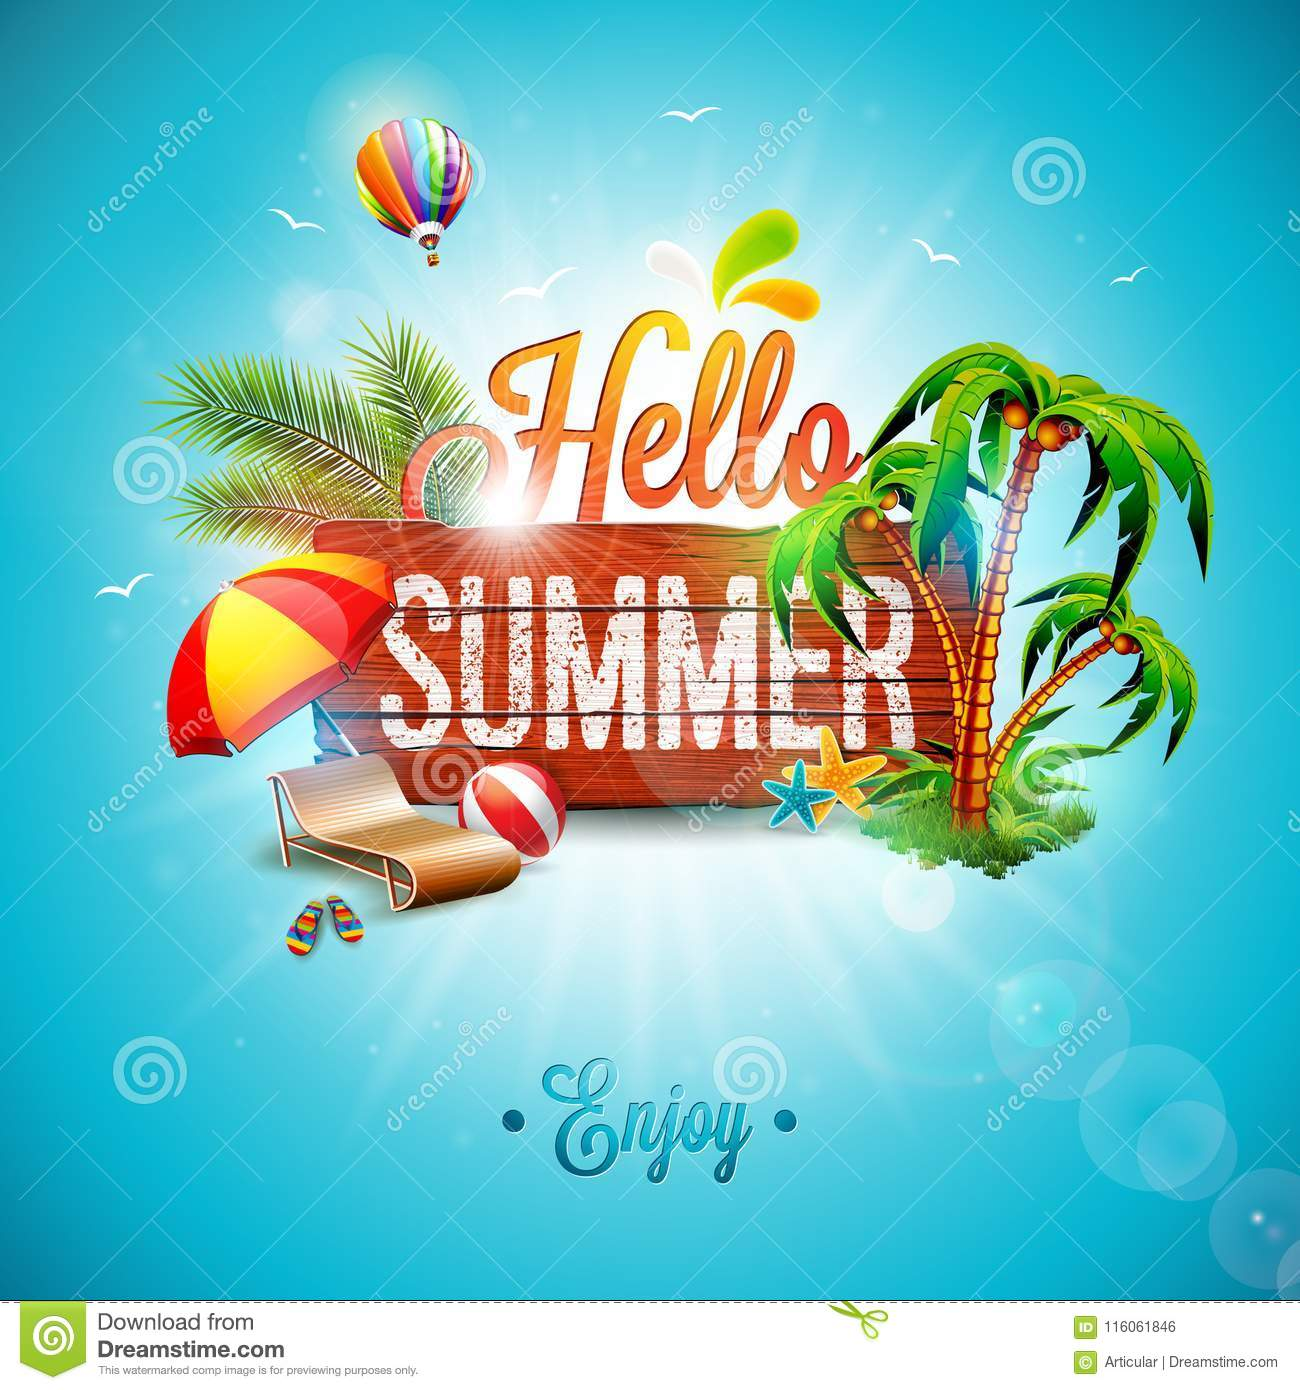 Vector Vintage Pop Art Beach Holiday Illustration Stock: Vector Hello Summer Holiday Typographic Illustration On